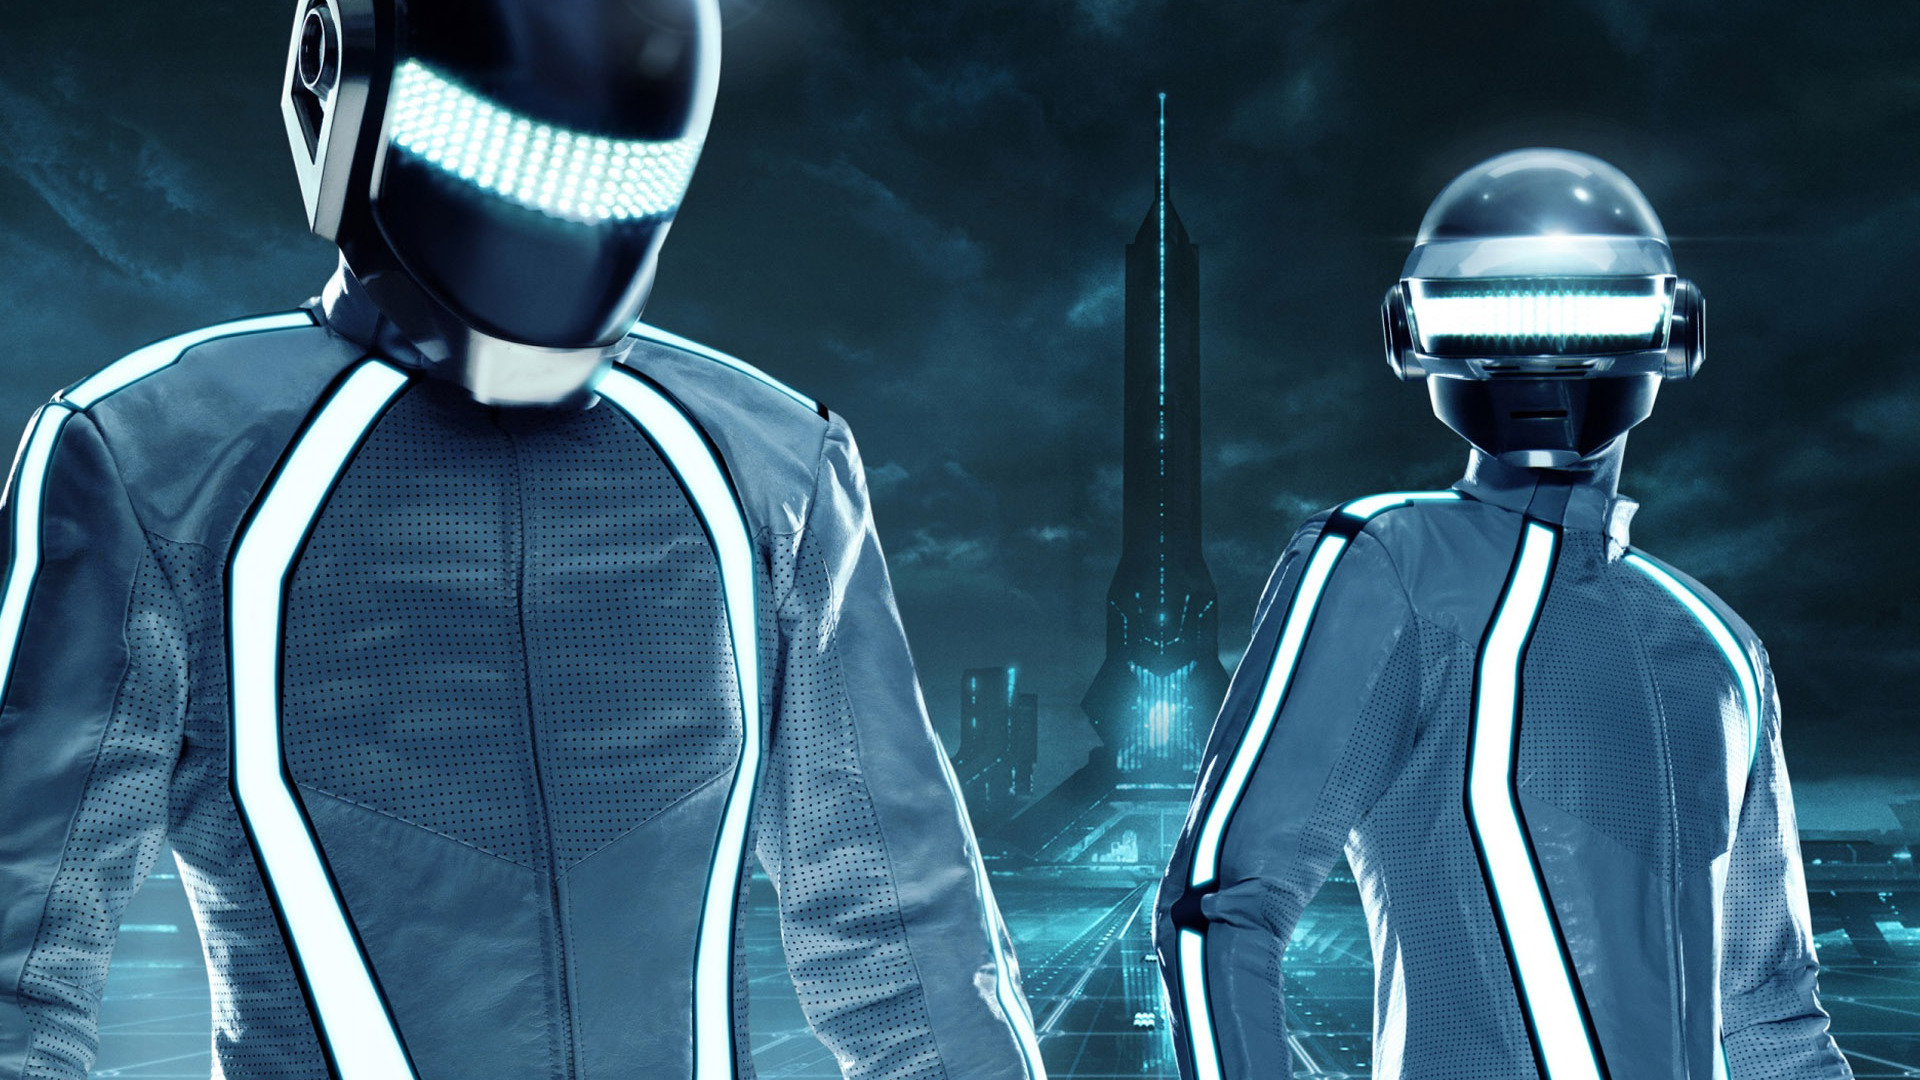 48+ Daft Punk Wallpaper 1366x768 on WallpaperSafari